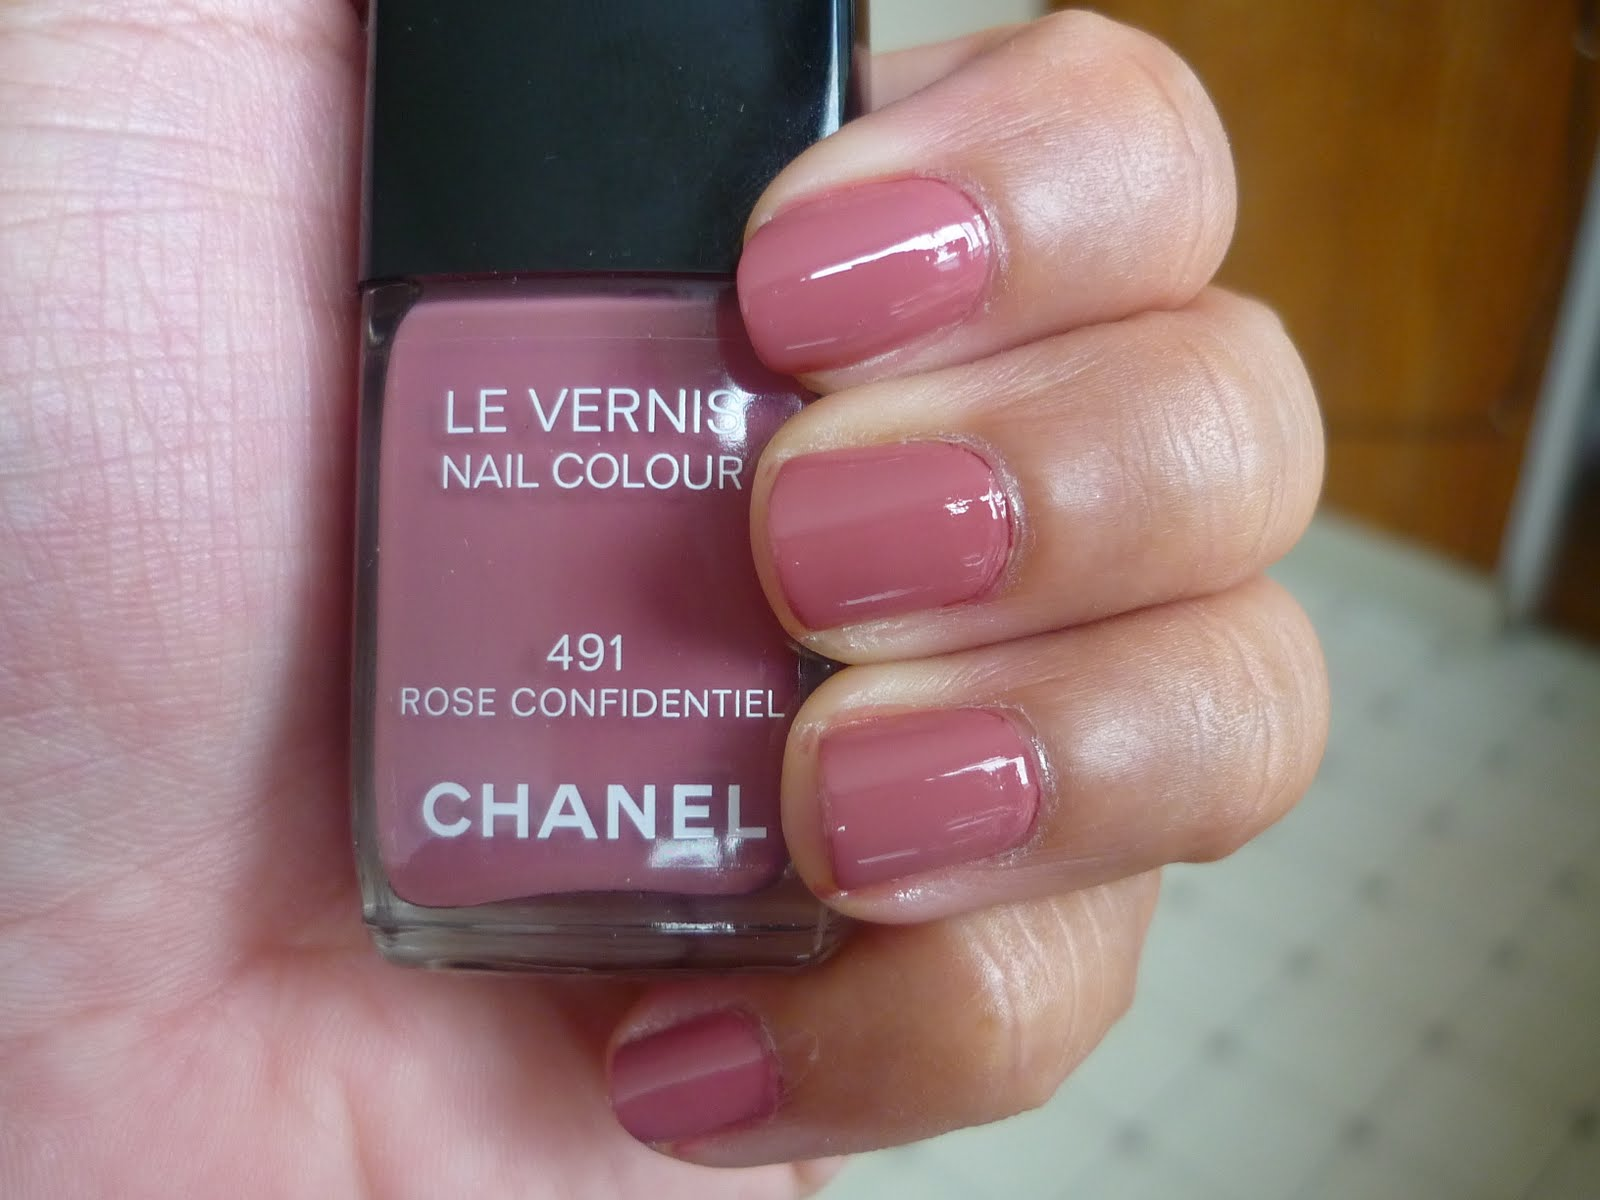 On The Vanity Nail Of The Day Chanel 491 Rose Confidentiel